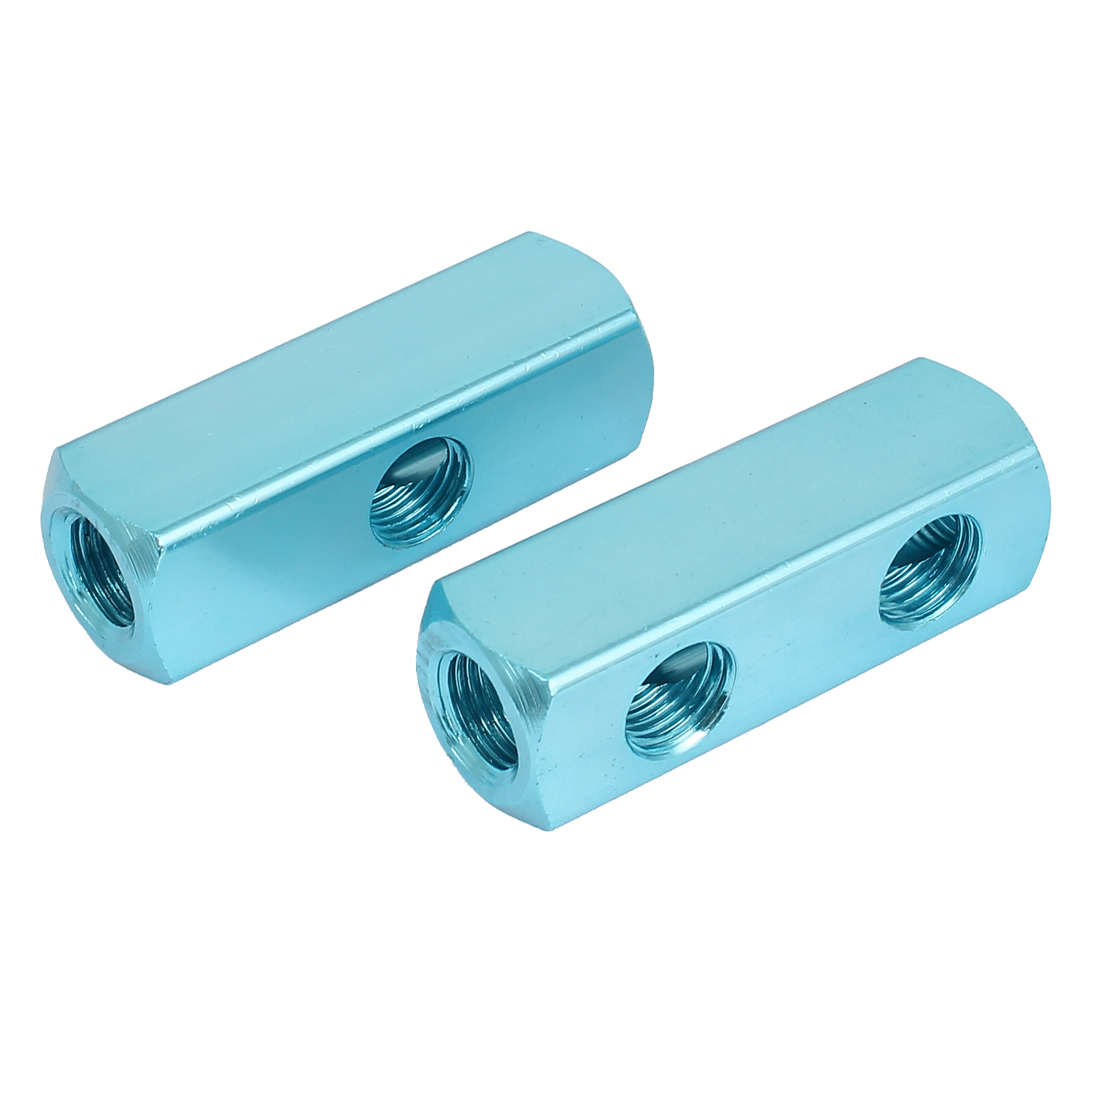 1/4BSP Thread 2 Ways Quick Connect Air Hose Inline Manifold Splitter Block Blue 2pcs